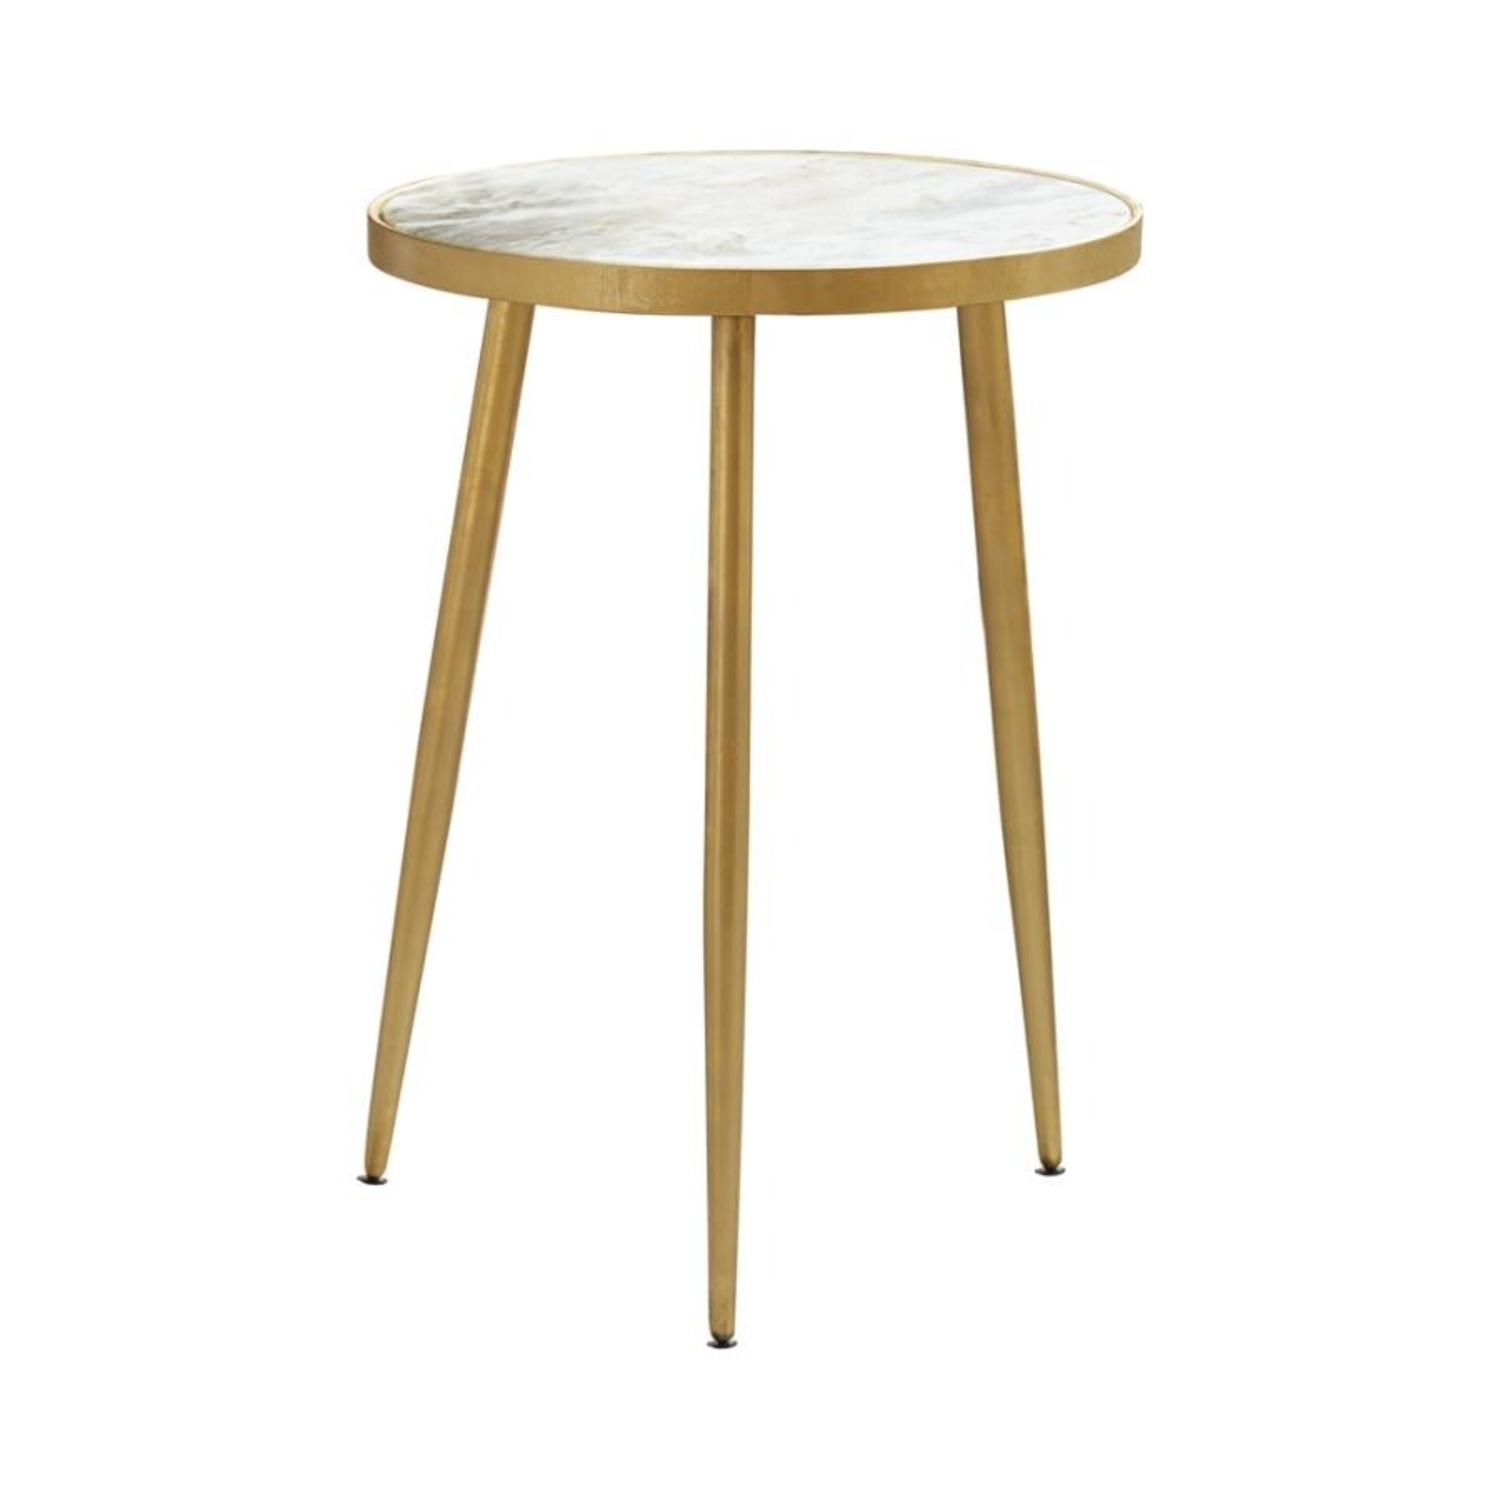 Accent Table In White Marble Top & Gold Finish - image-0